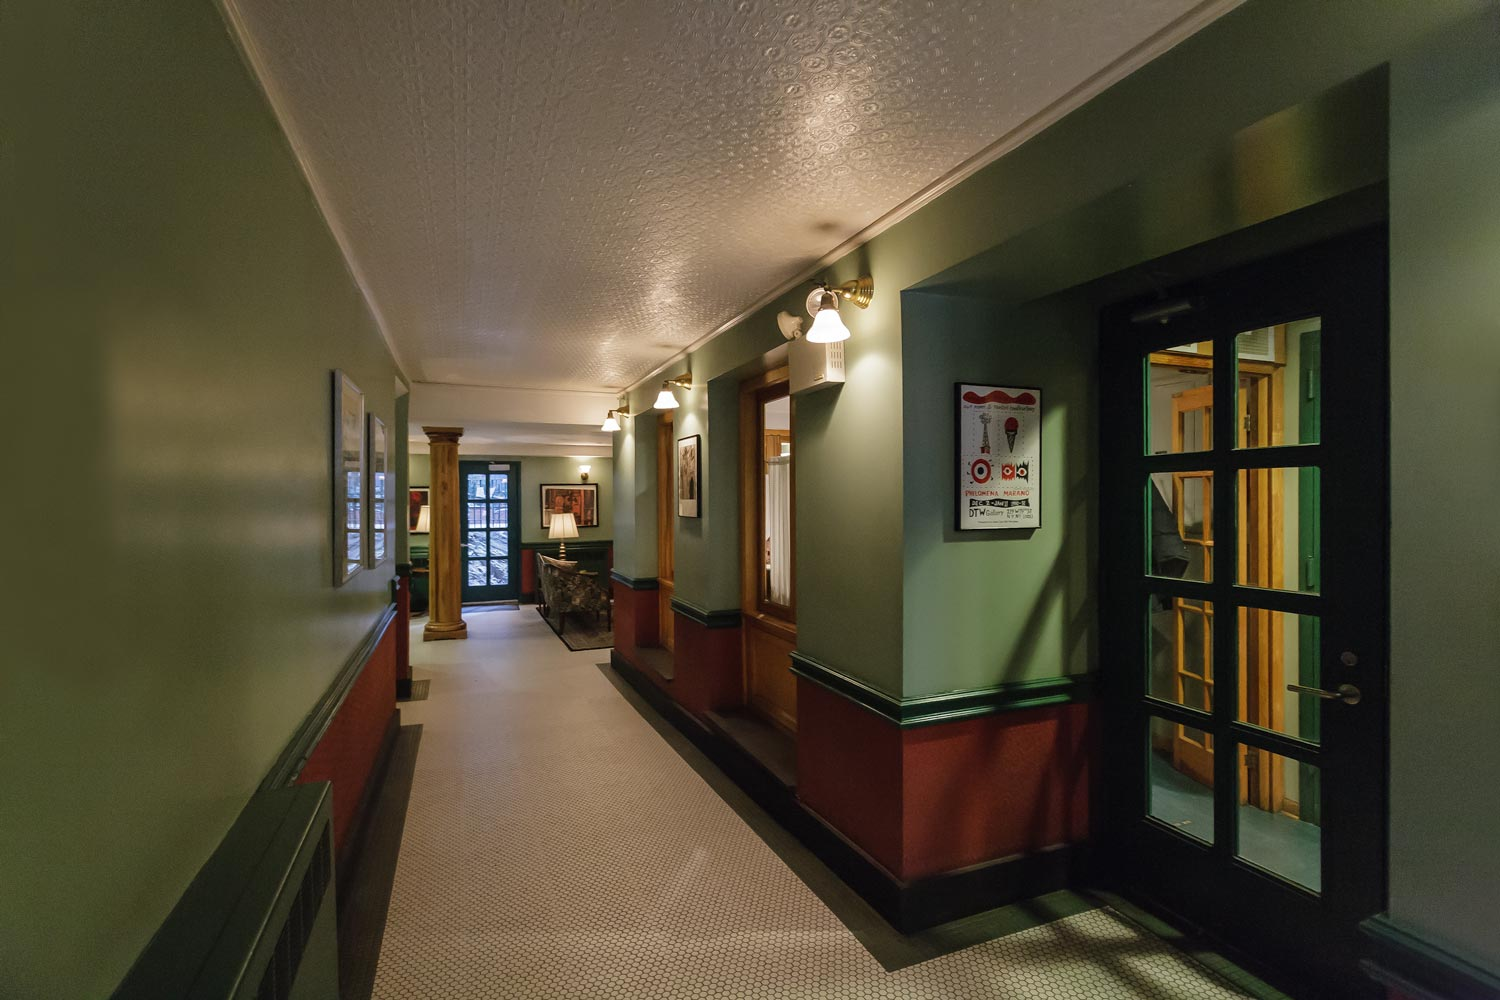 Entrance hall at Nero Wolfe supportive housing rehabilitation and expansion project by OCV Architects.